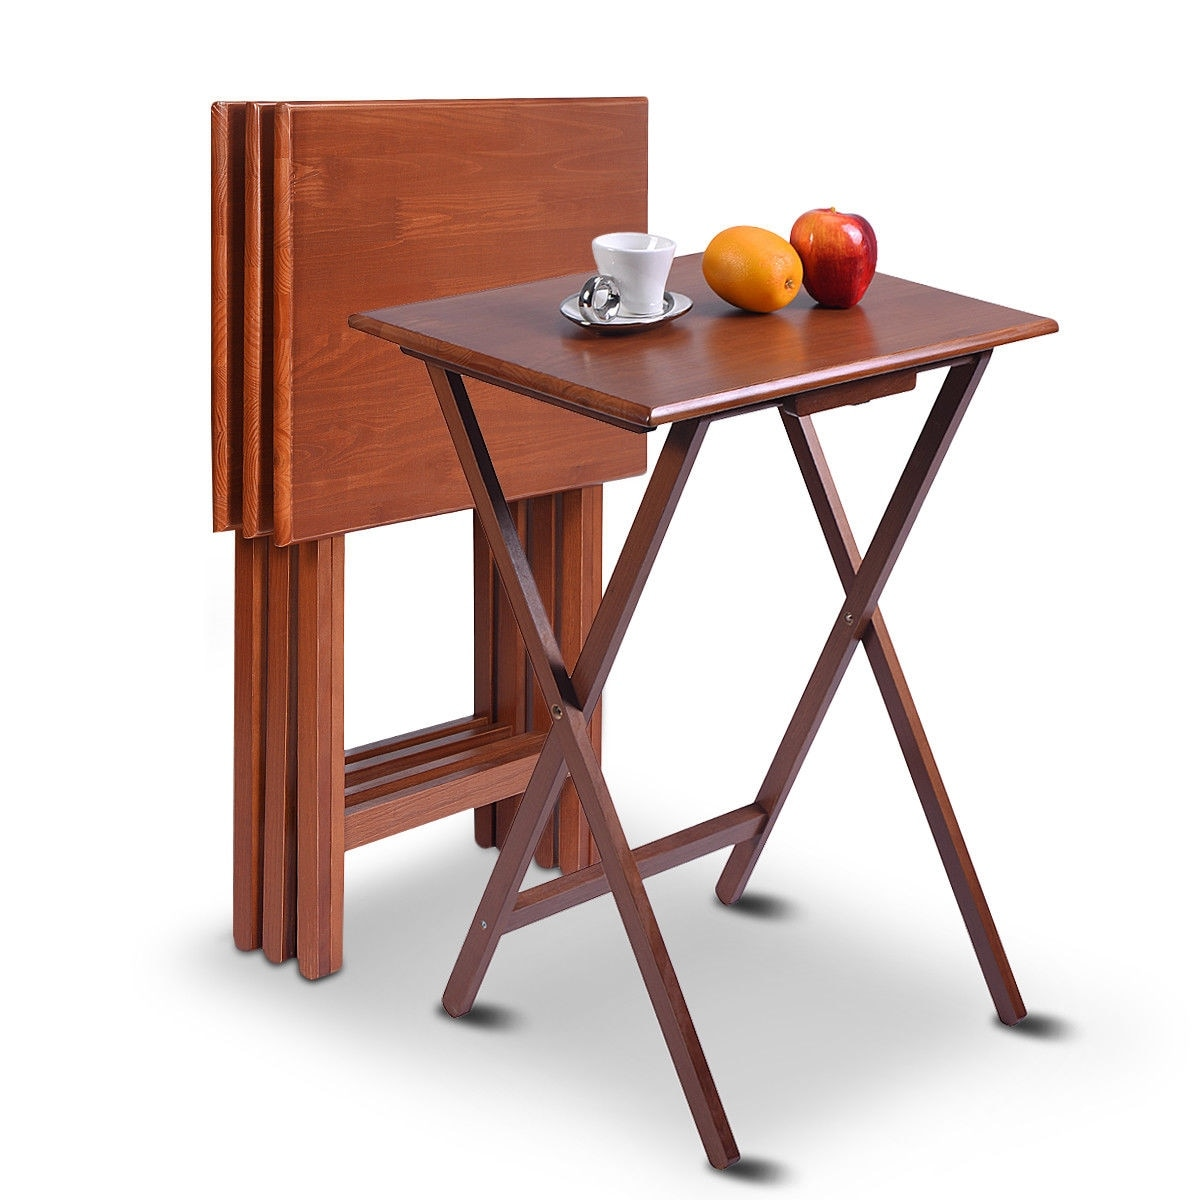 Costway set of 4 portable wood tv table folding tray desk serving furniture walnut